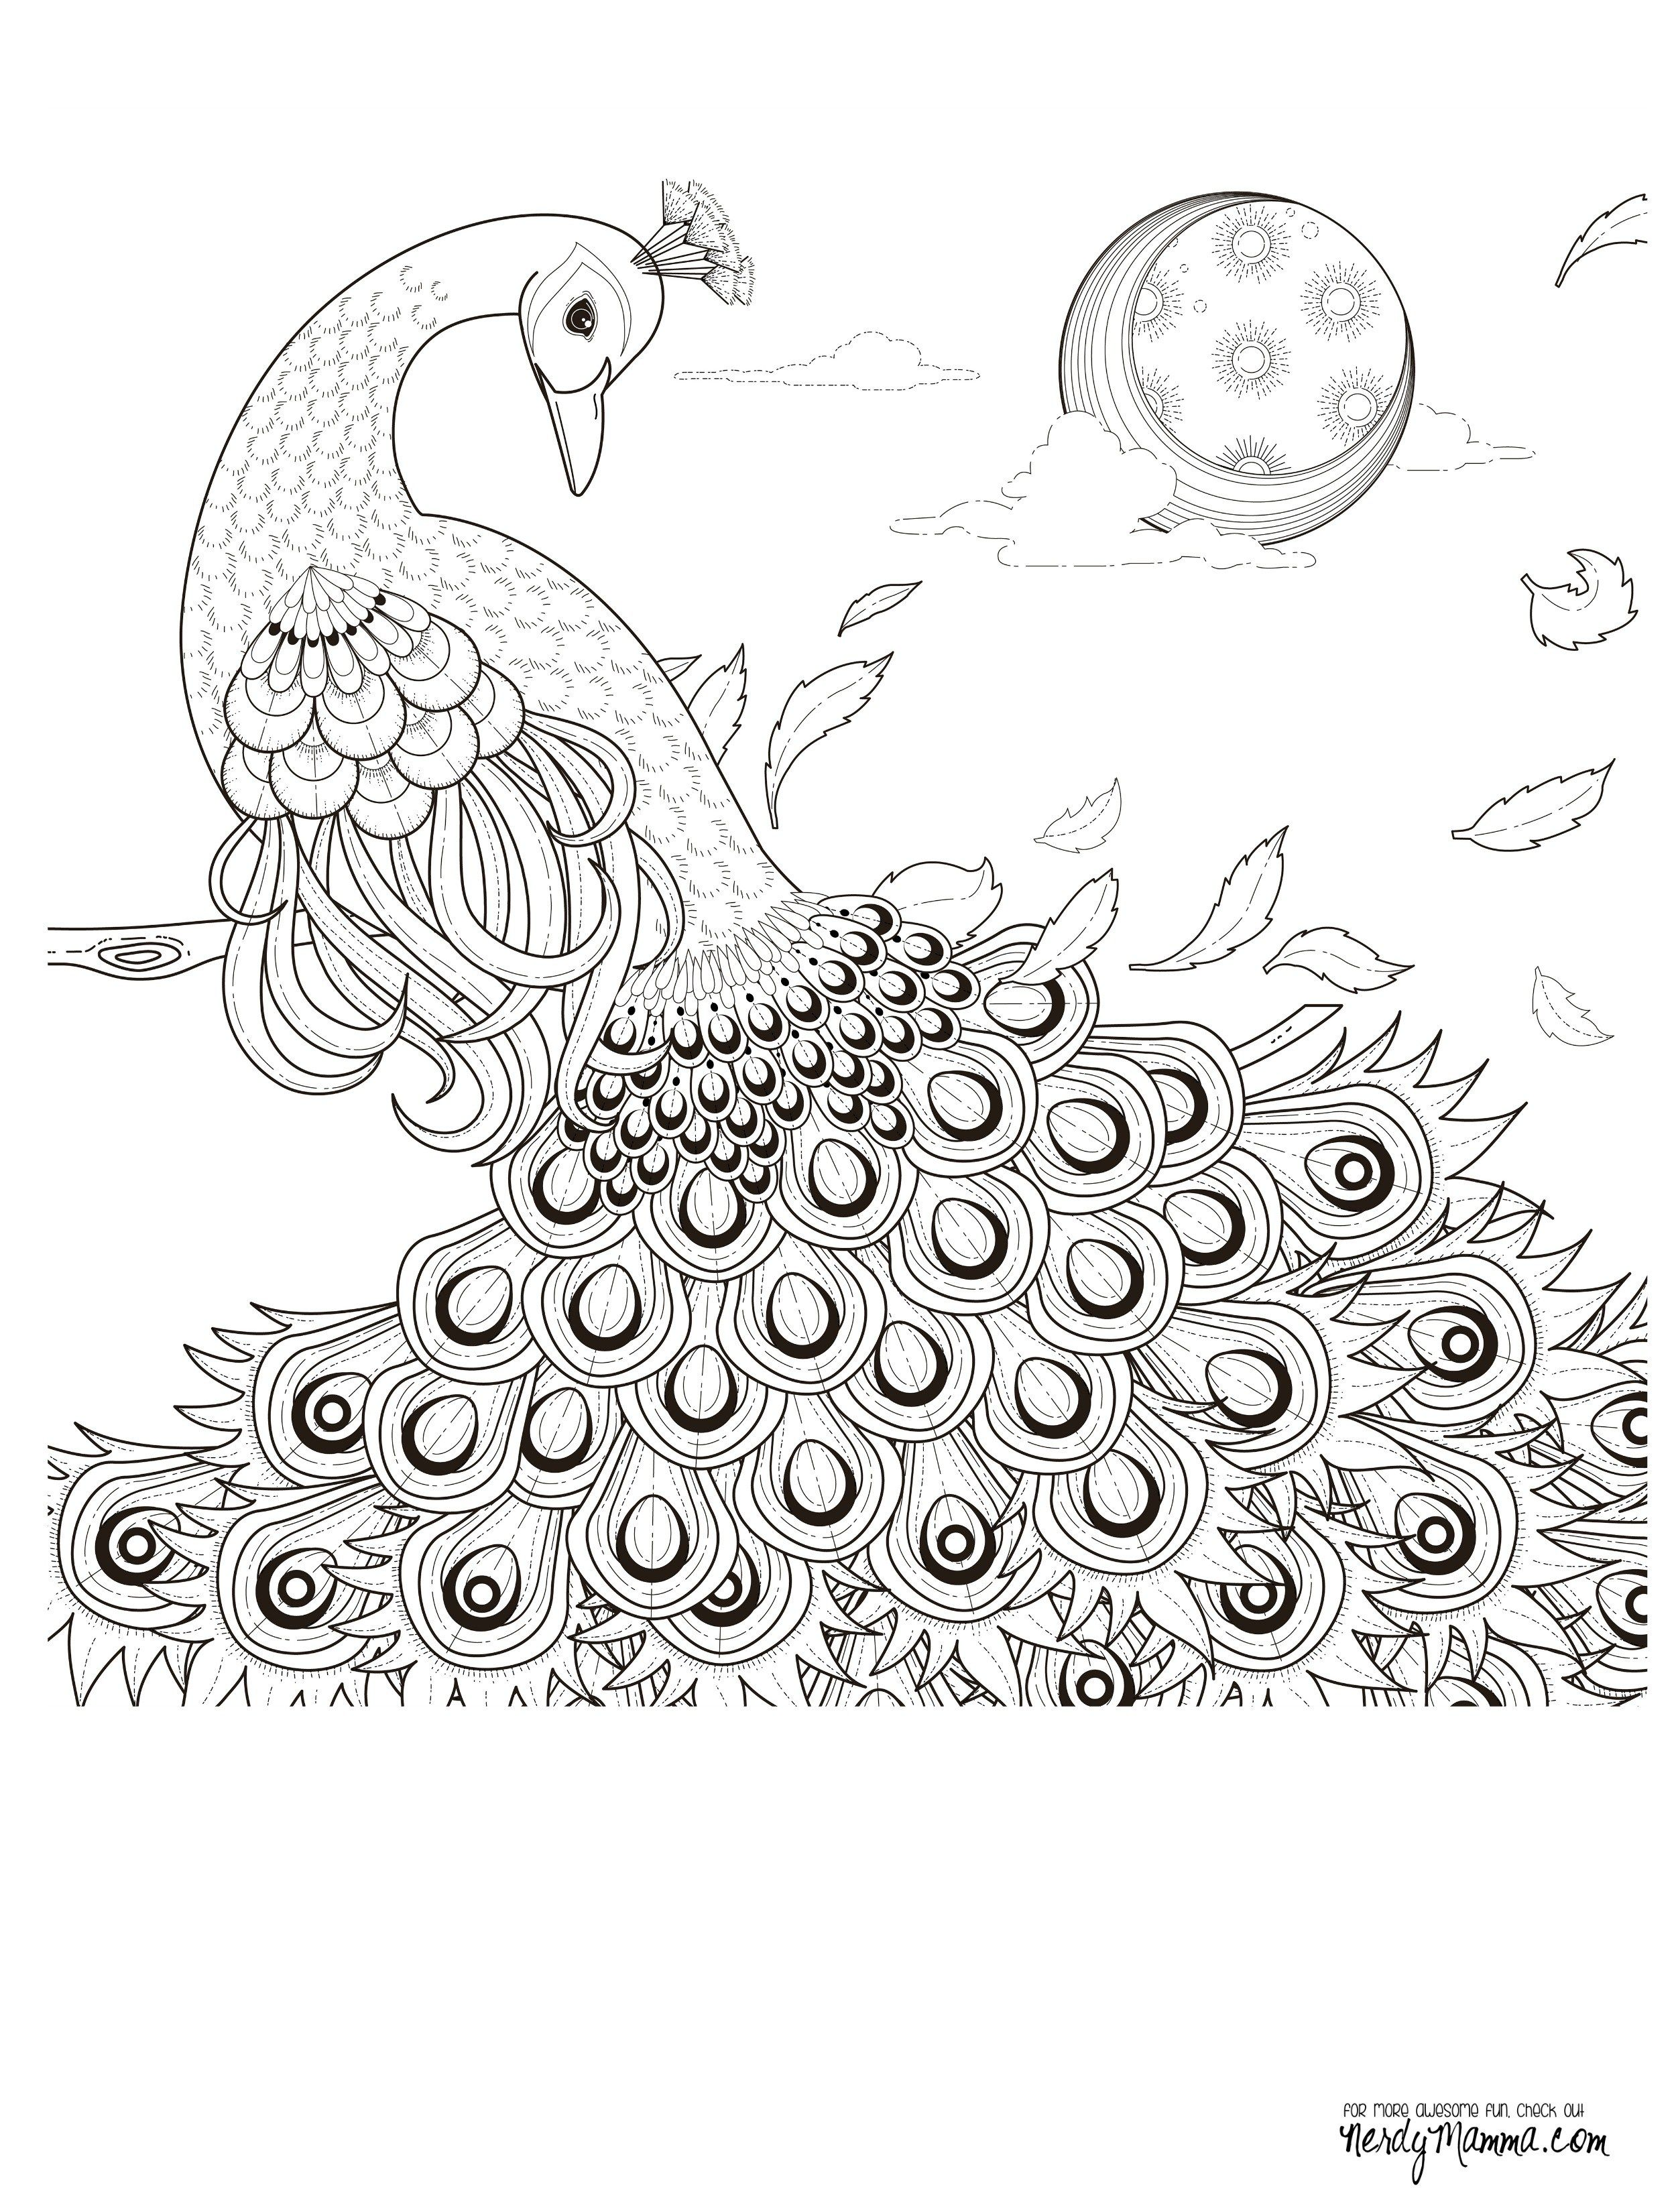 Free coloring pages of peacock feathers coloring everyday printable - 11 Free Printable Adult Coloring Pages